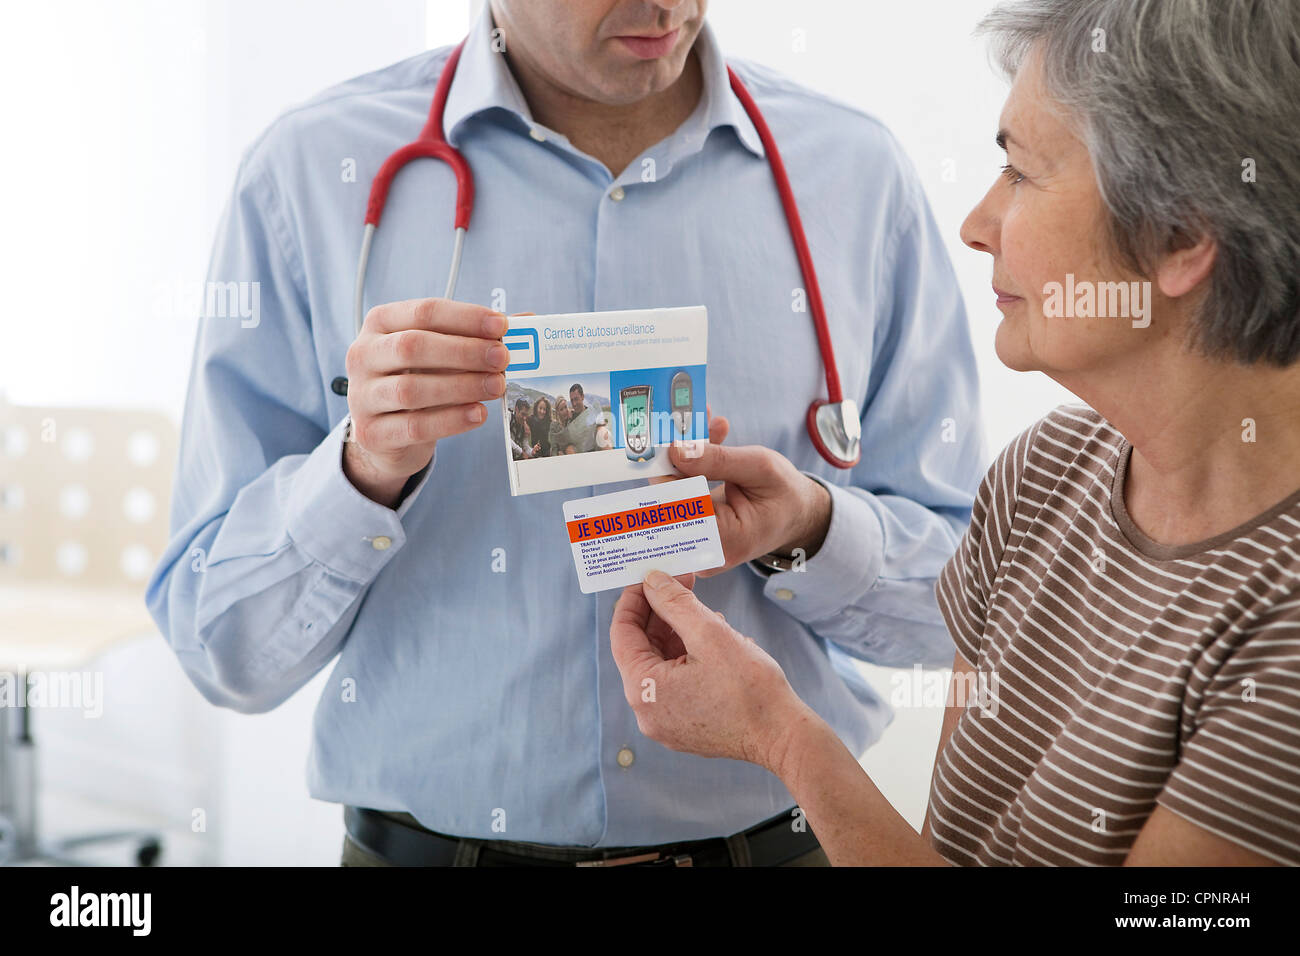 CONSULTING FOR DIABETES ELDERLY. - Stock Image